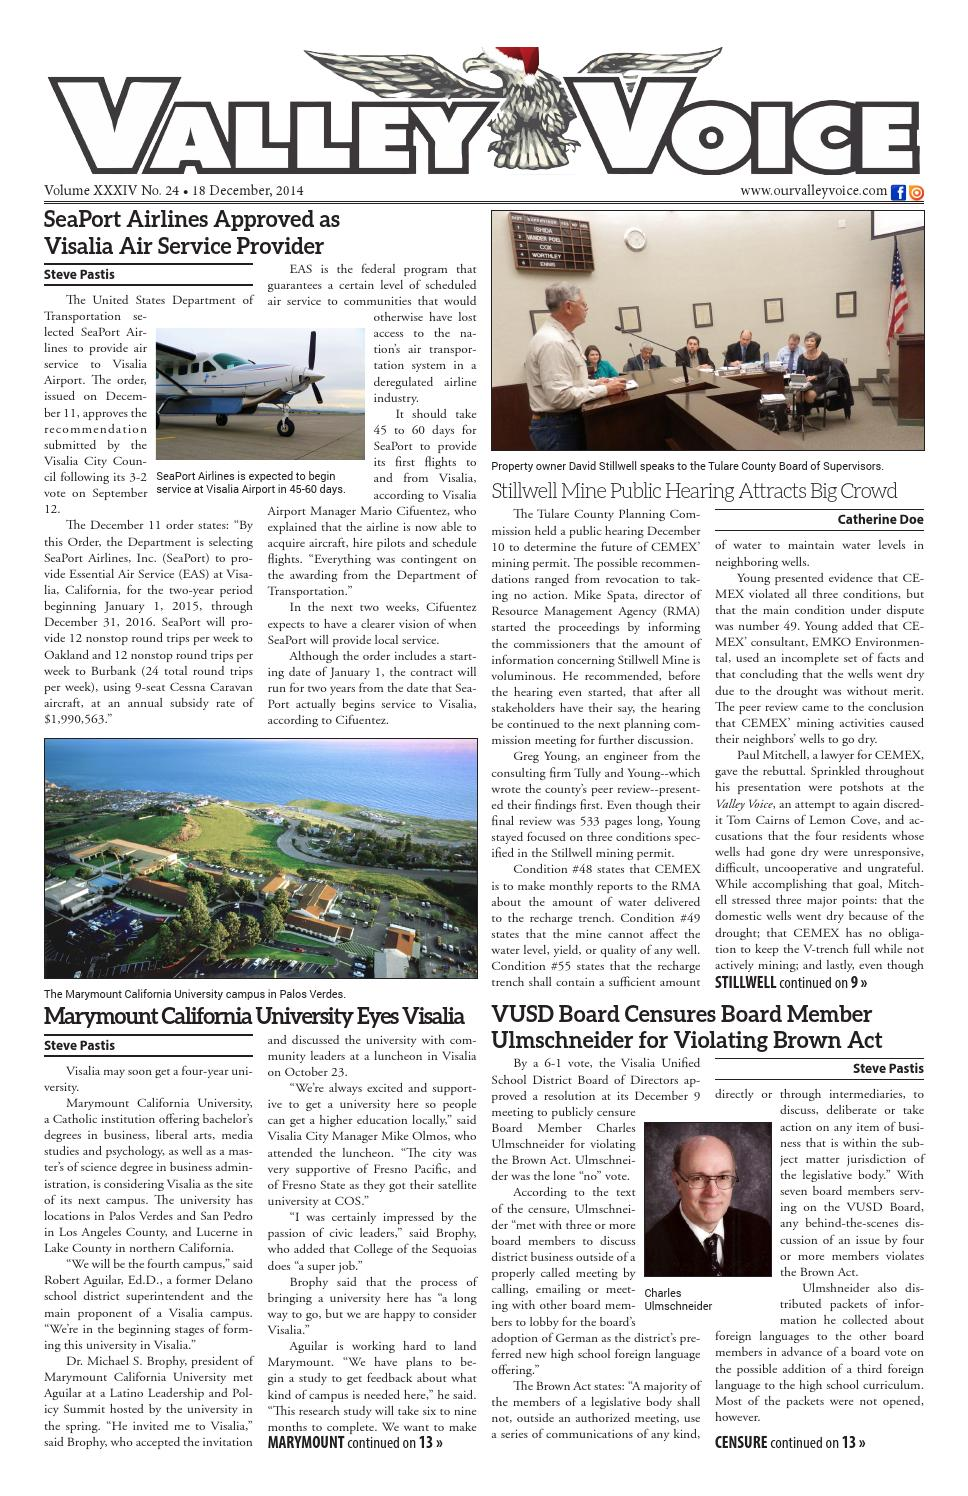 f8f494234db Valley Voice Issue 35 (18 December, 2014) by Valley Voice - issuu